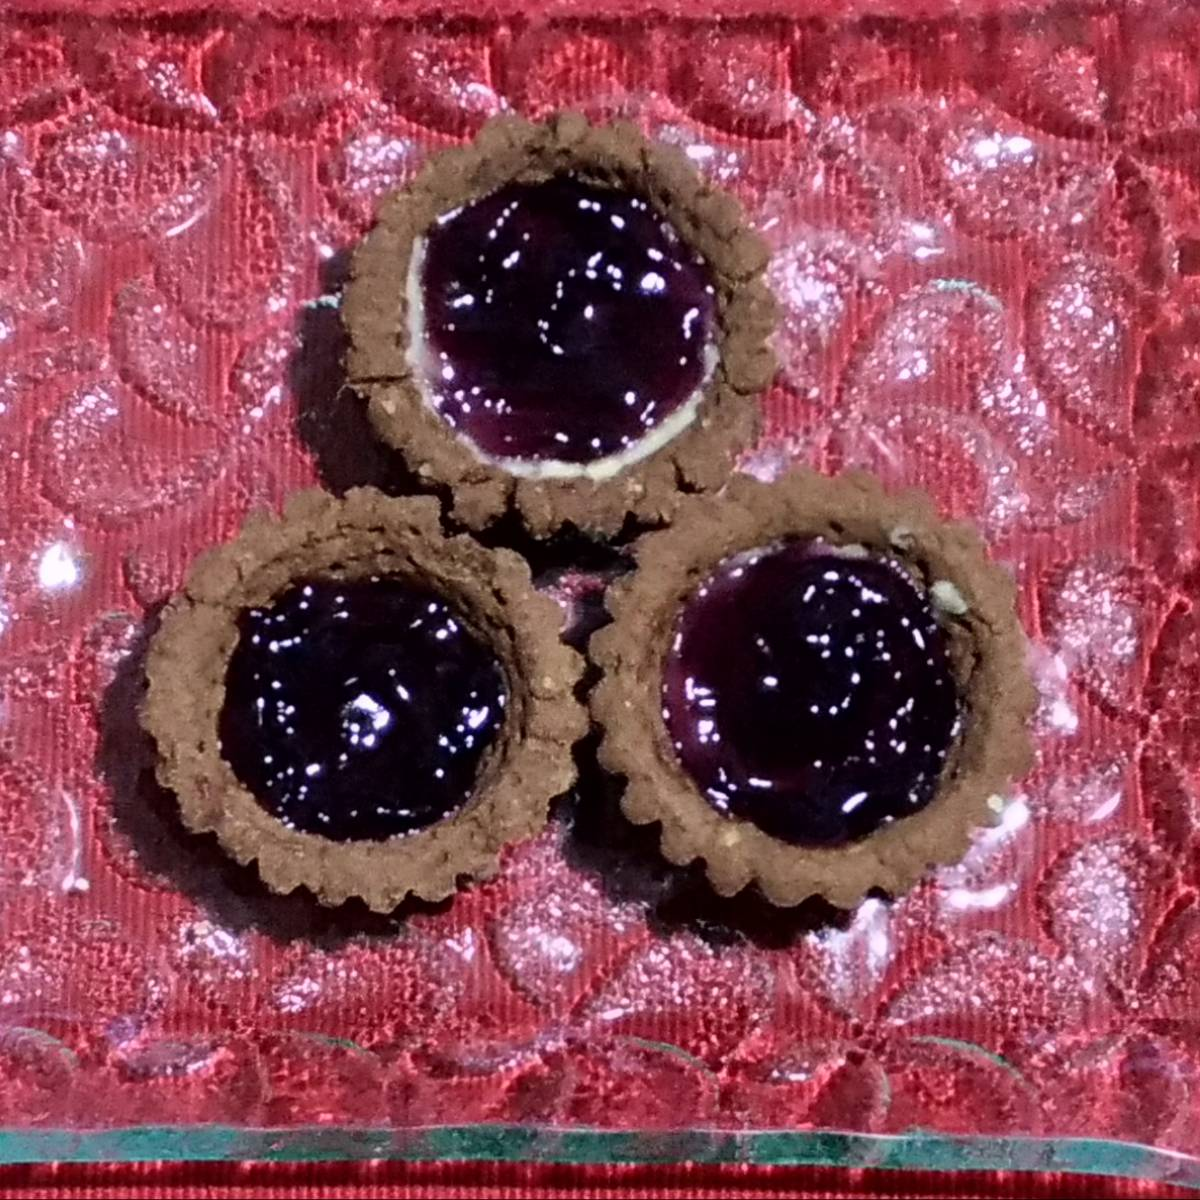 Mini Pie Blueberry Chocolate Crust(paket 3 Piece)1